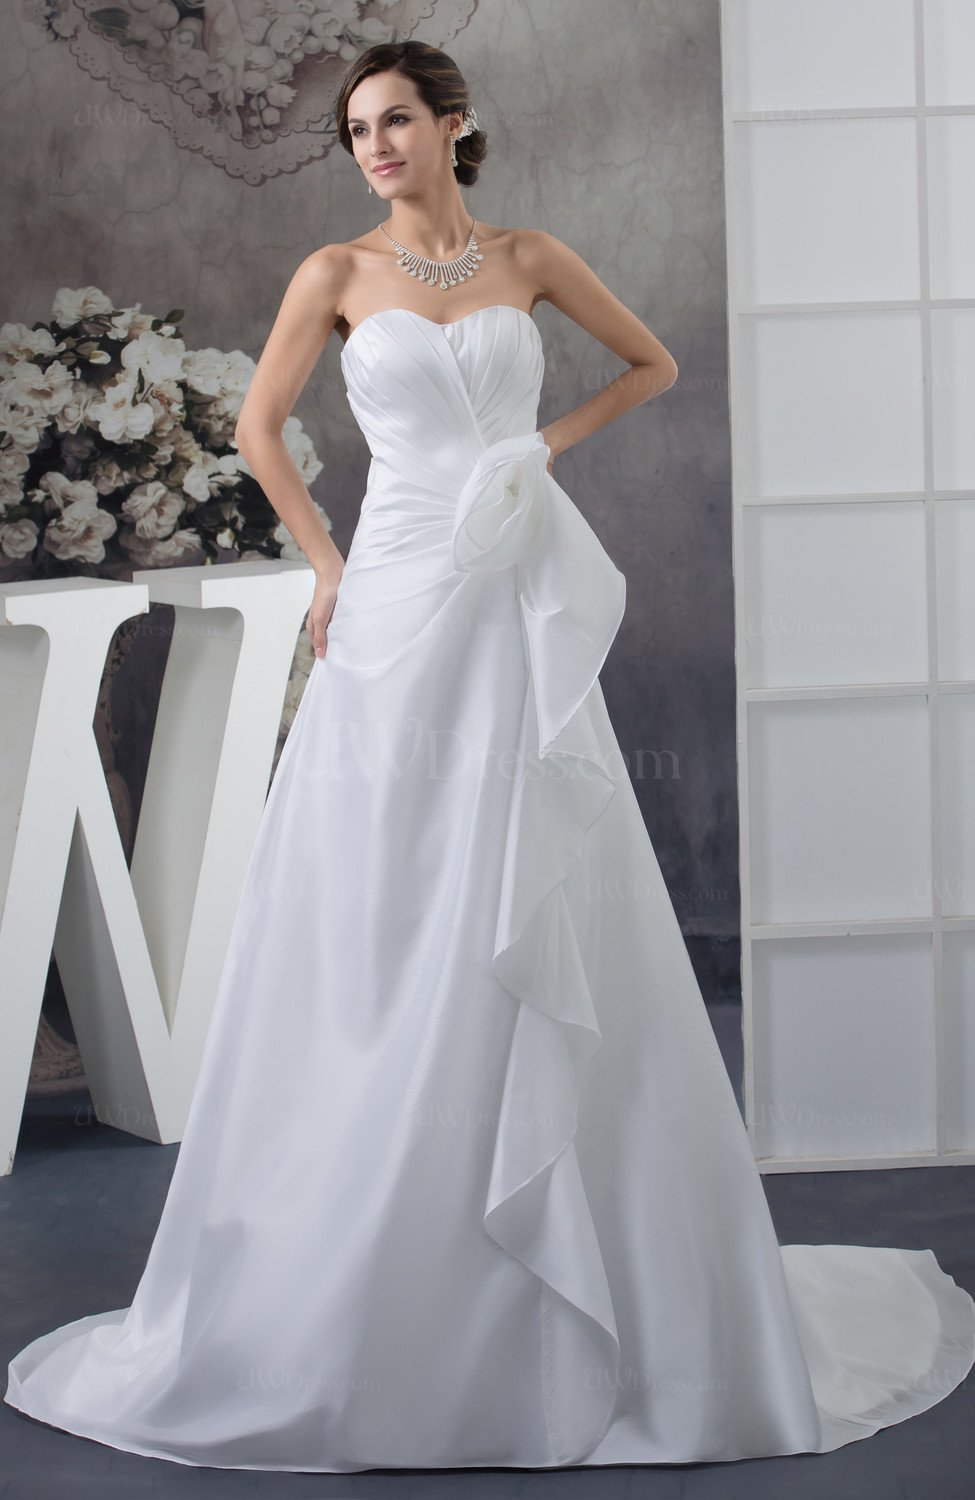 White allure bridal gowns inexpensive formal winter for Cheap allure wedding dresses